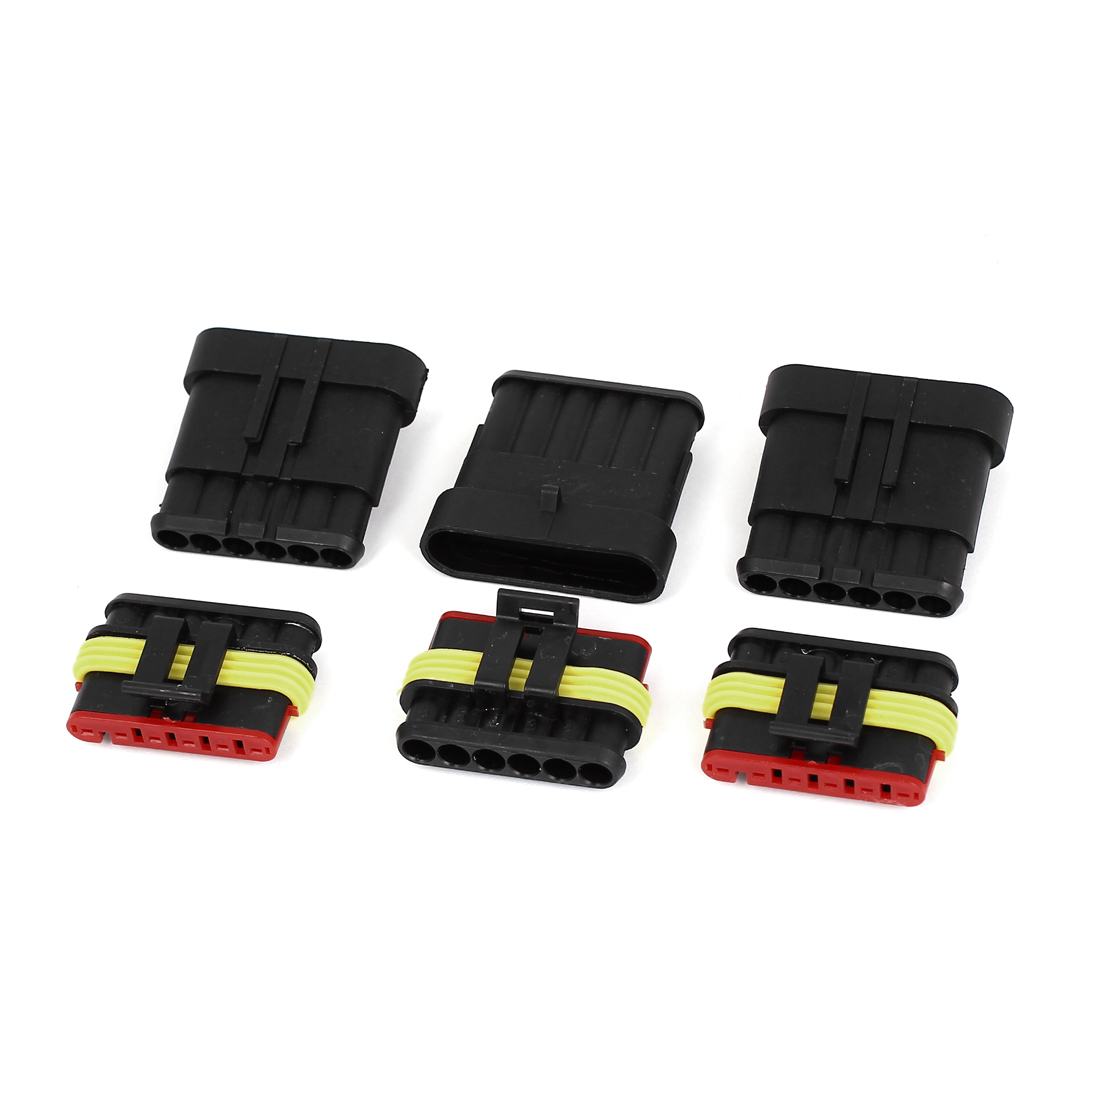 3 Set 6 Way Terminal Sealed Waterproof HID Connector for Car Auto